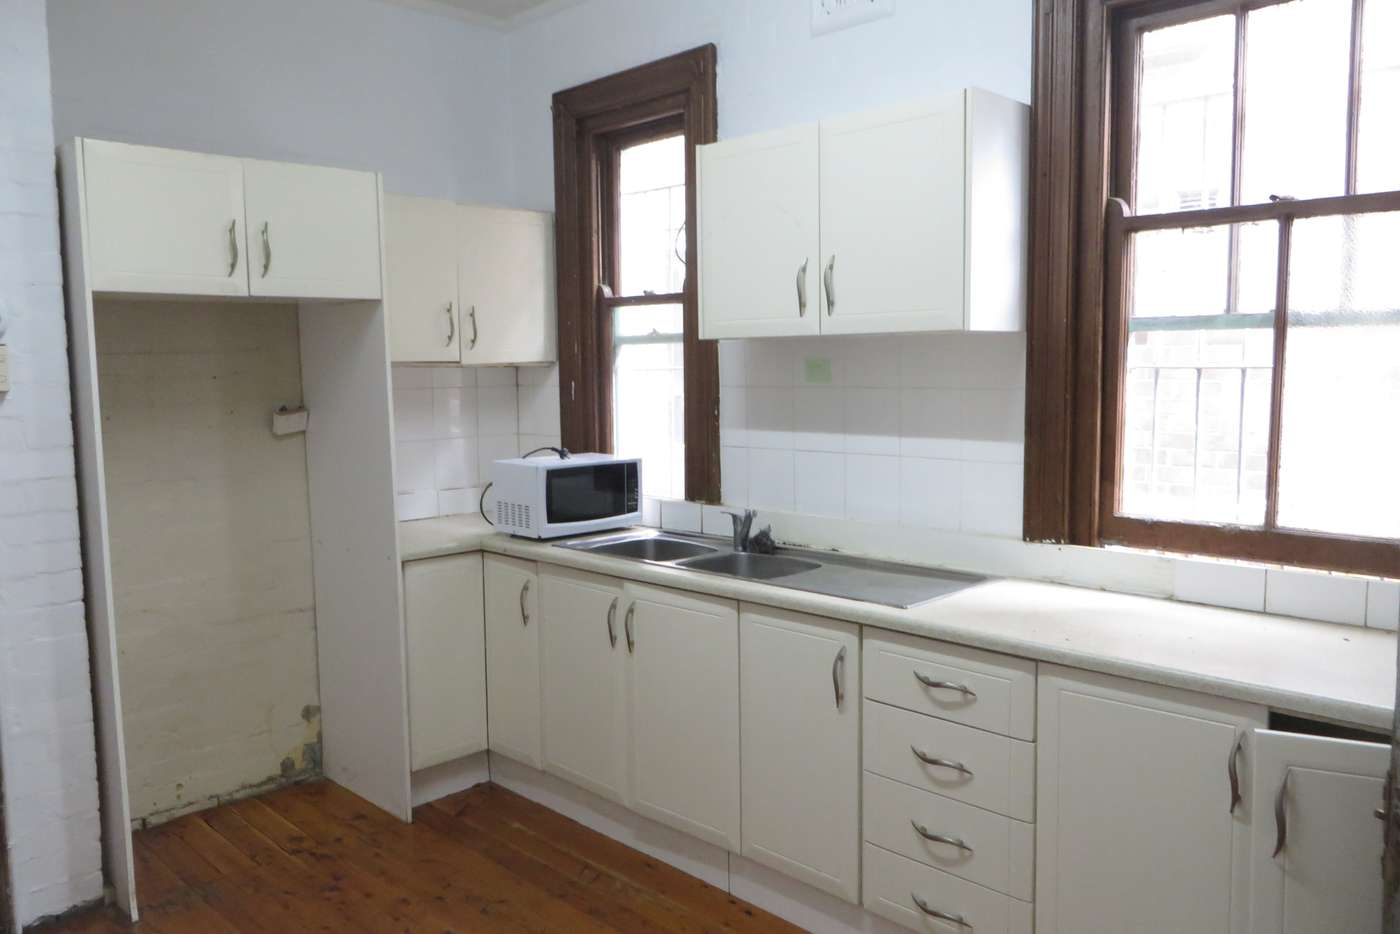 Seventh view of Homely house listing, 111 Commonwealth Street, Surry Hills NSW 2010